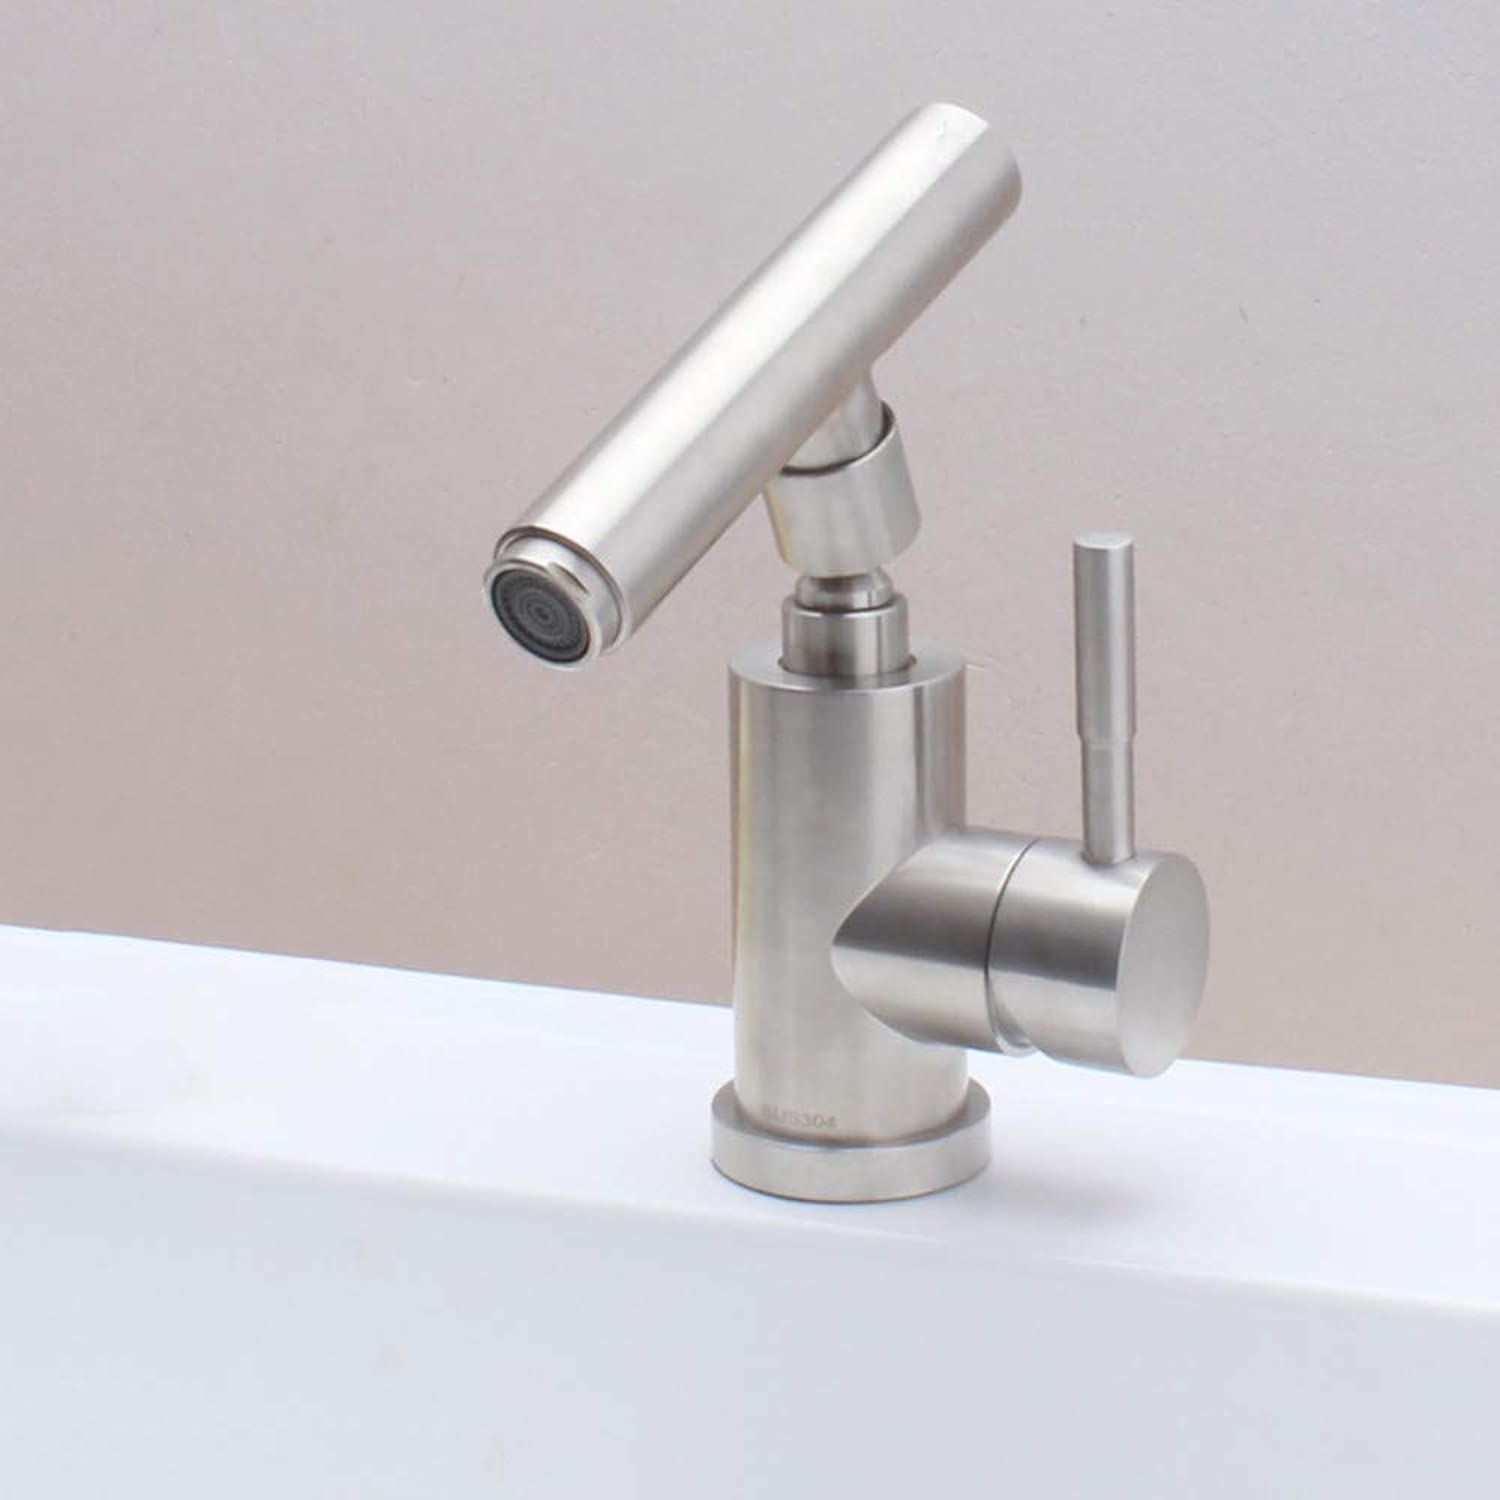 Stainless Steel Faucet Heightened Single Hole Wash Basin Faucet Hot and Cold Water Above Counter Basin Mixing Valve Faucet